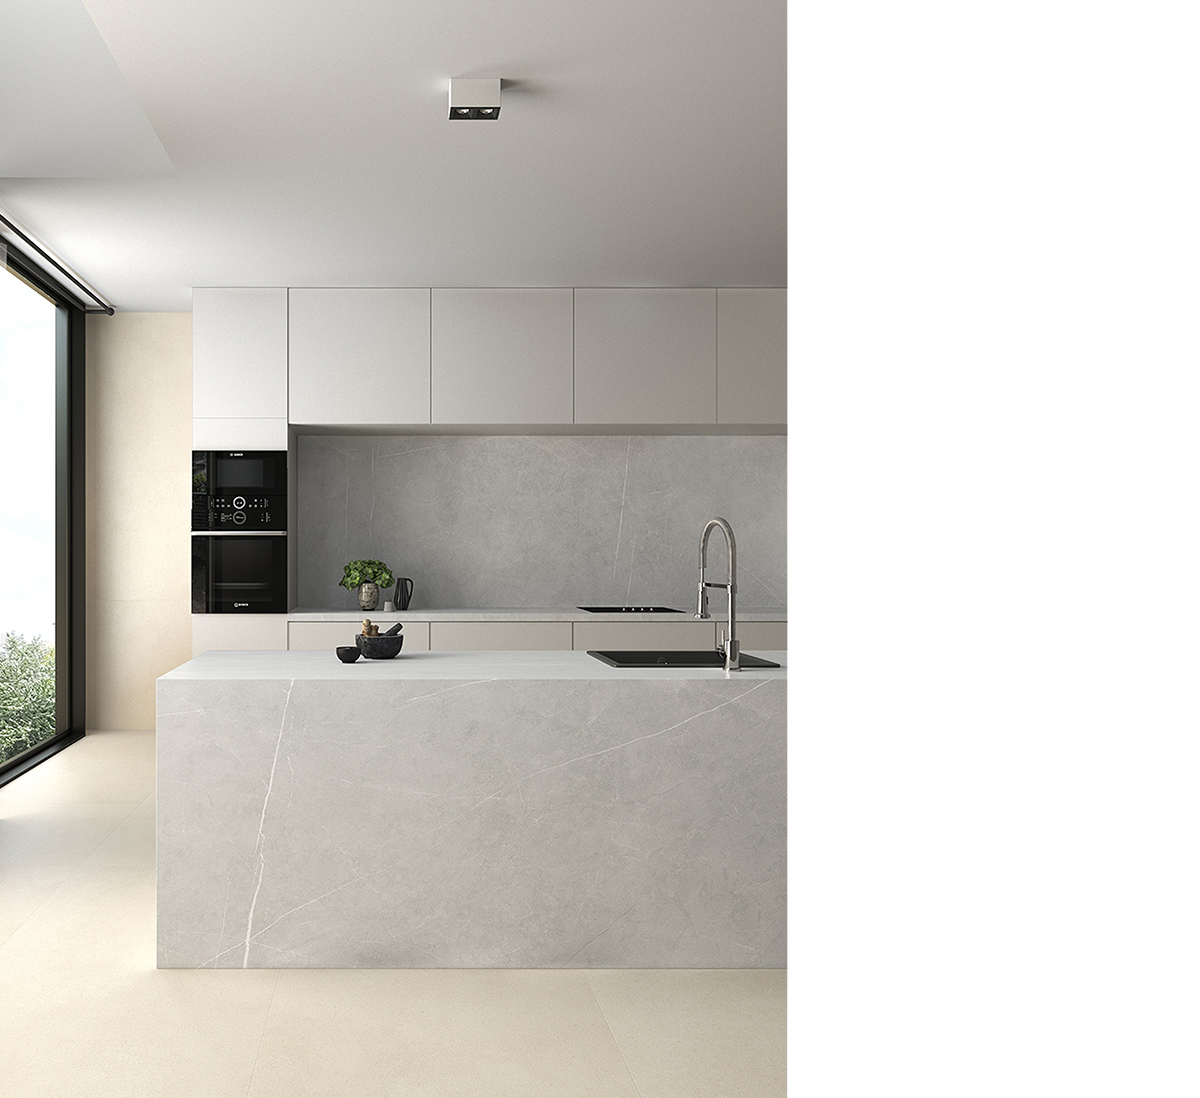 squarerooms-hafary-kitchen-island-counter-marble-natural-stone-white-bright-texture-monochromatic